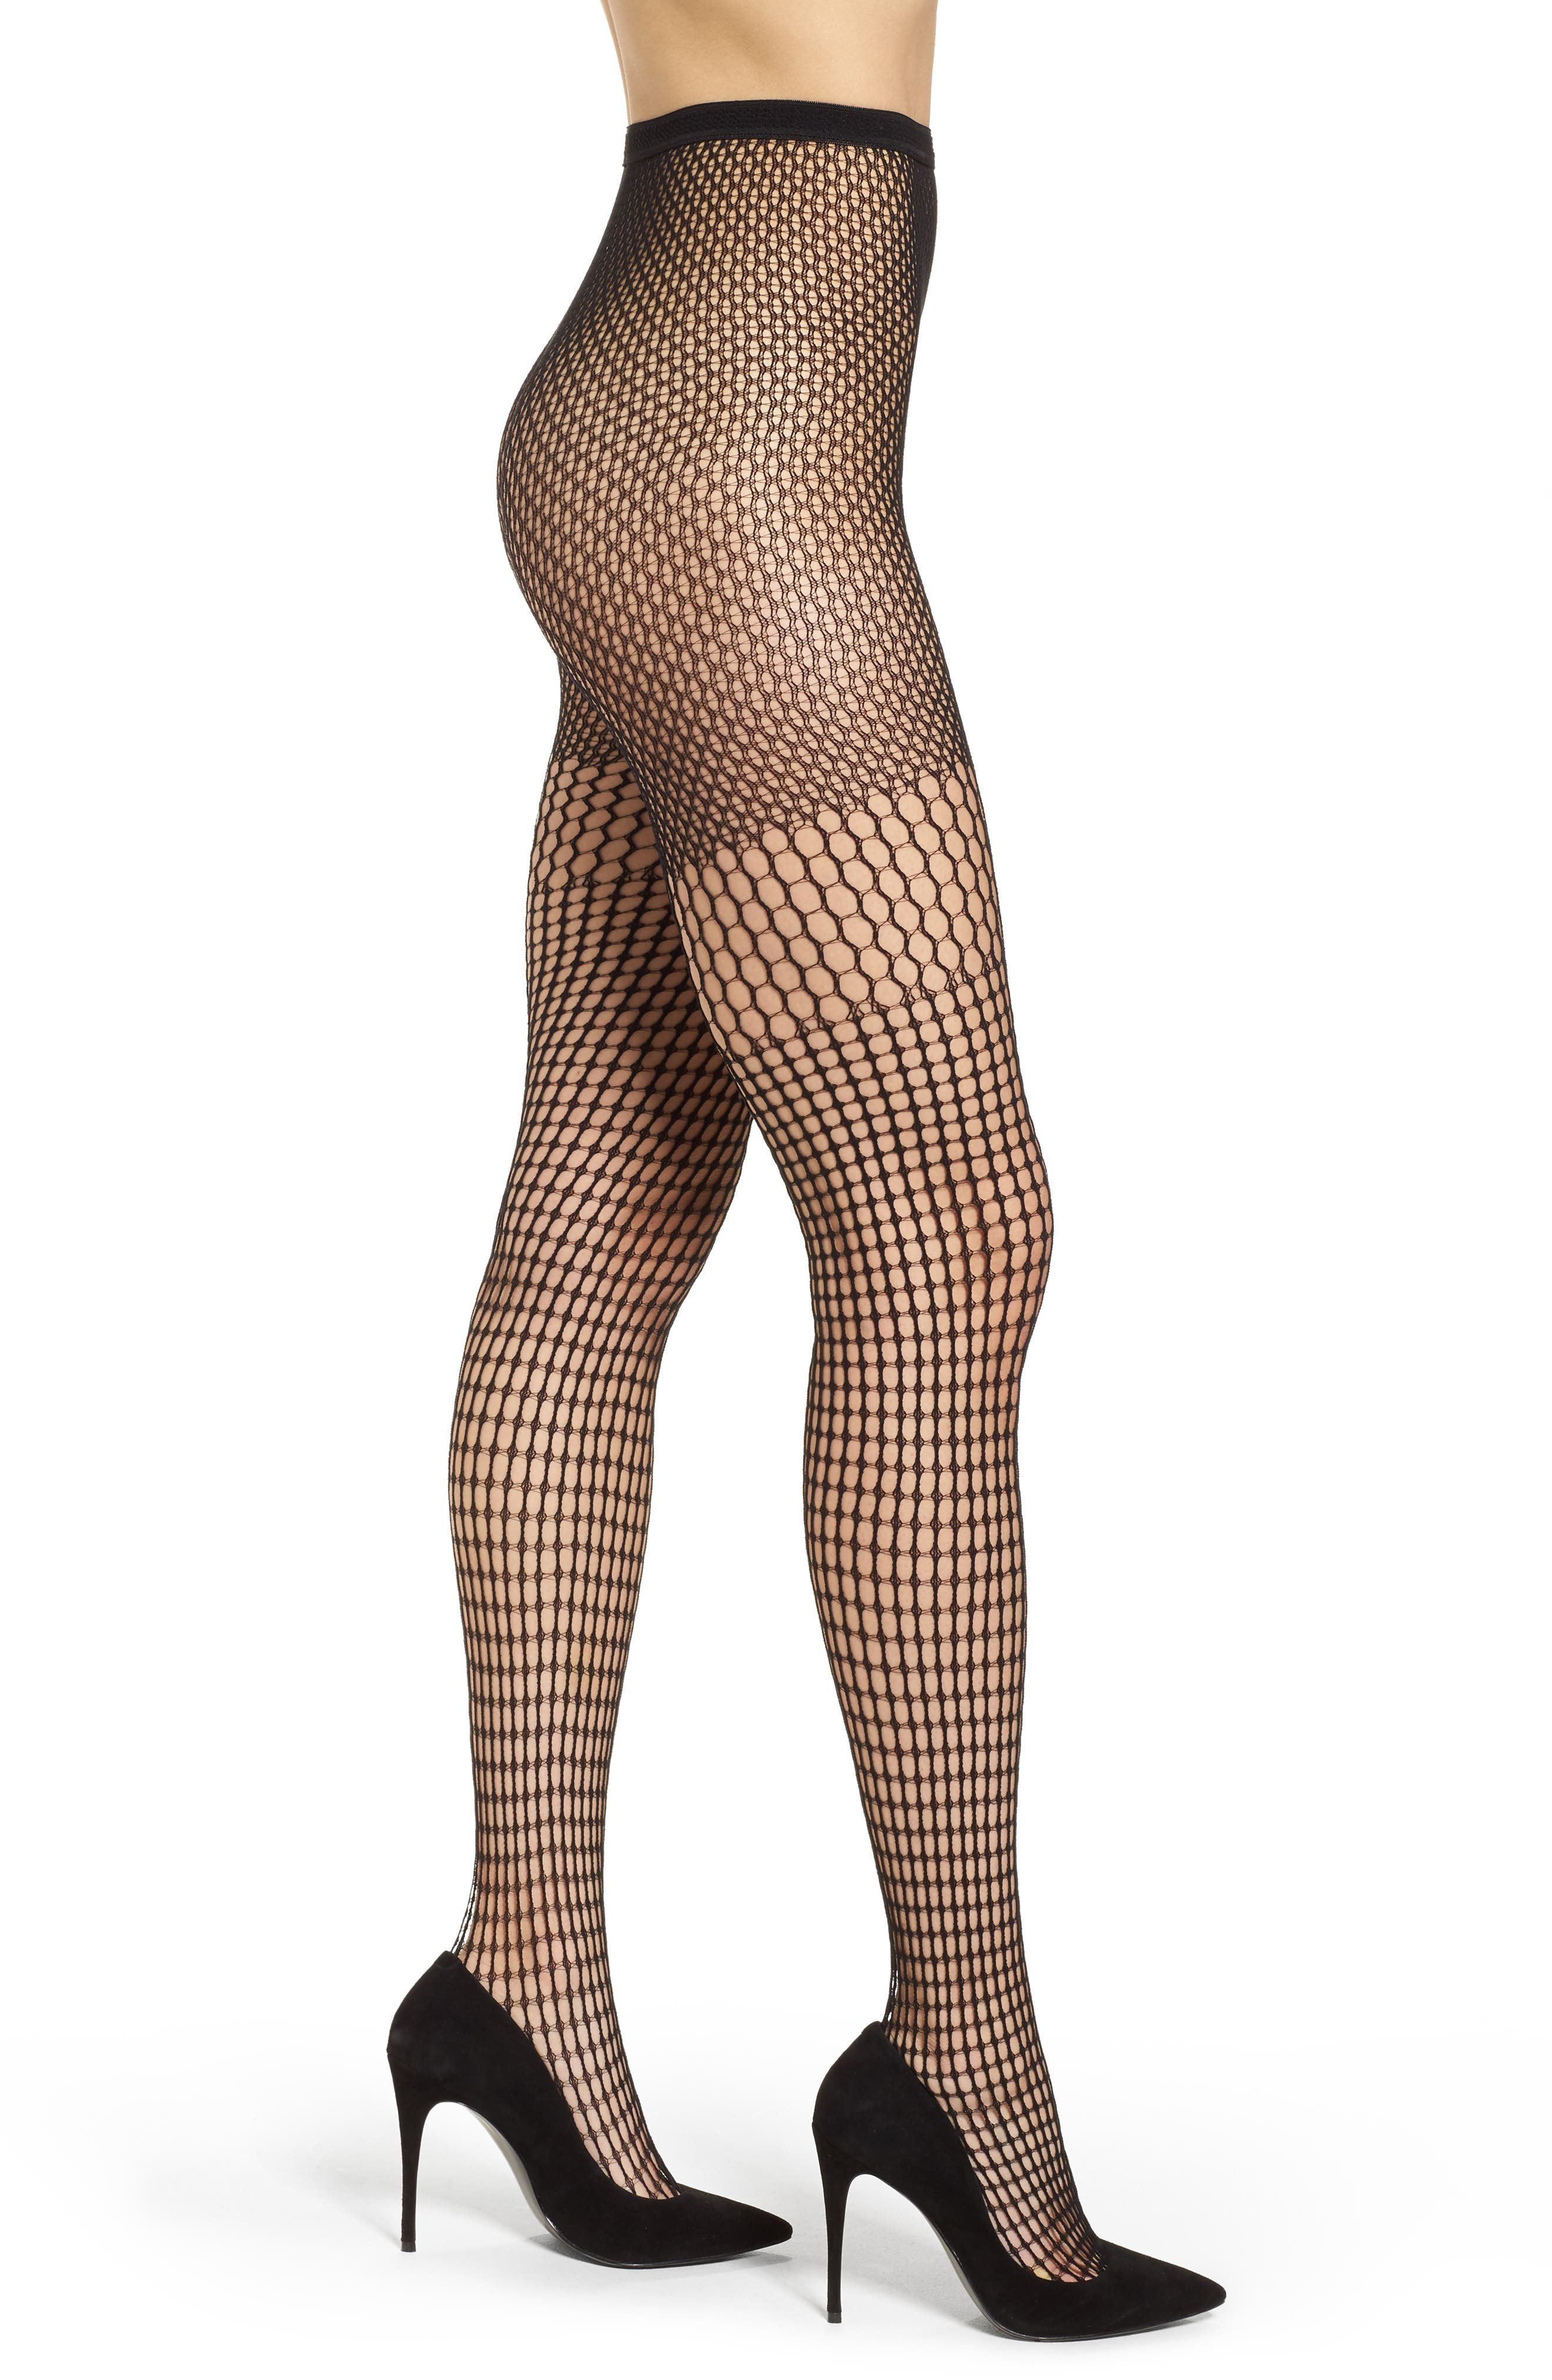 Square Net Tights,                         Main,                         color, 007